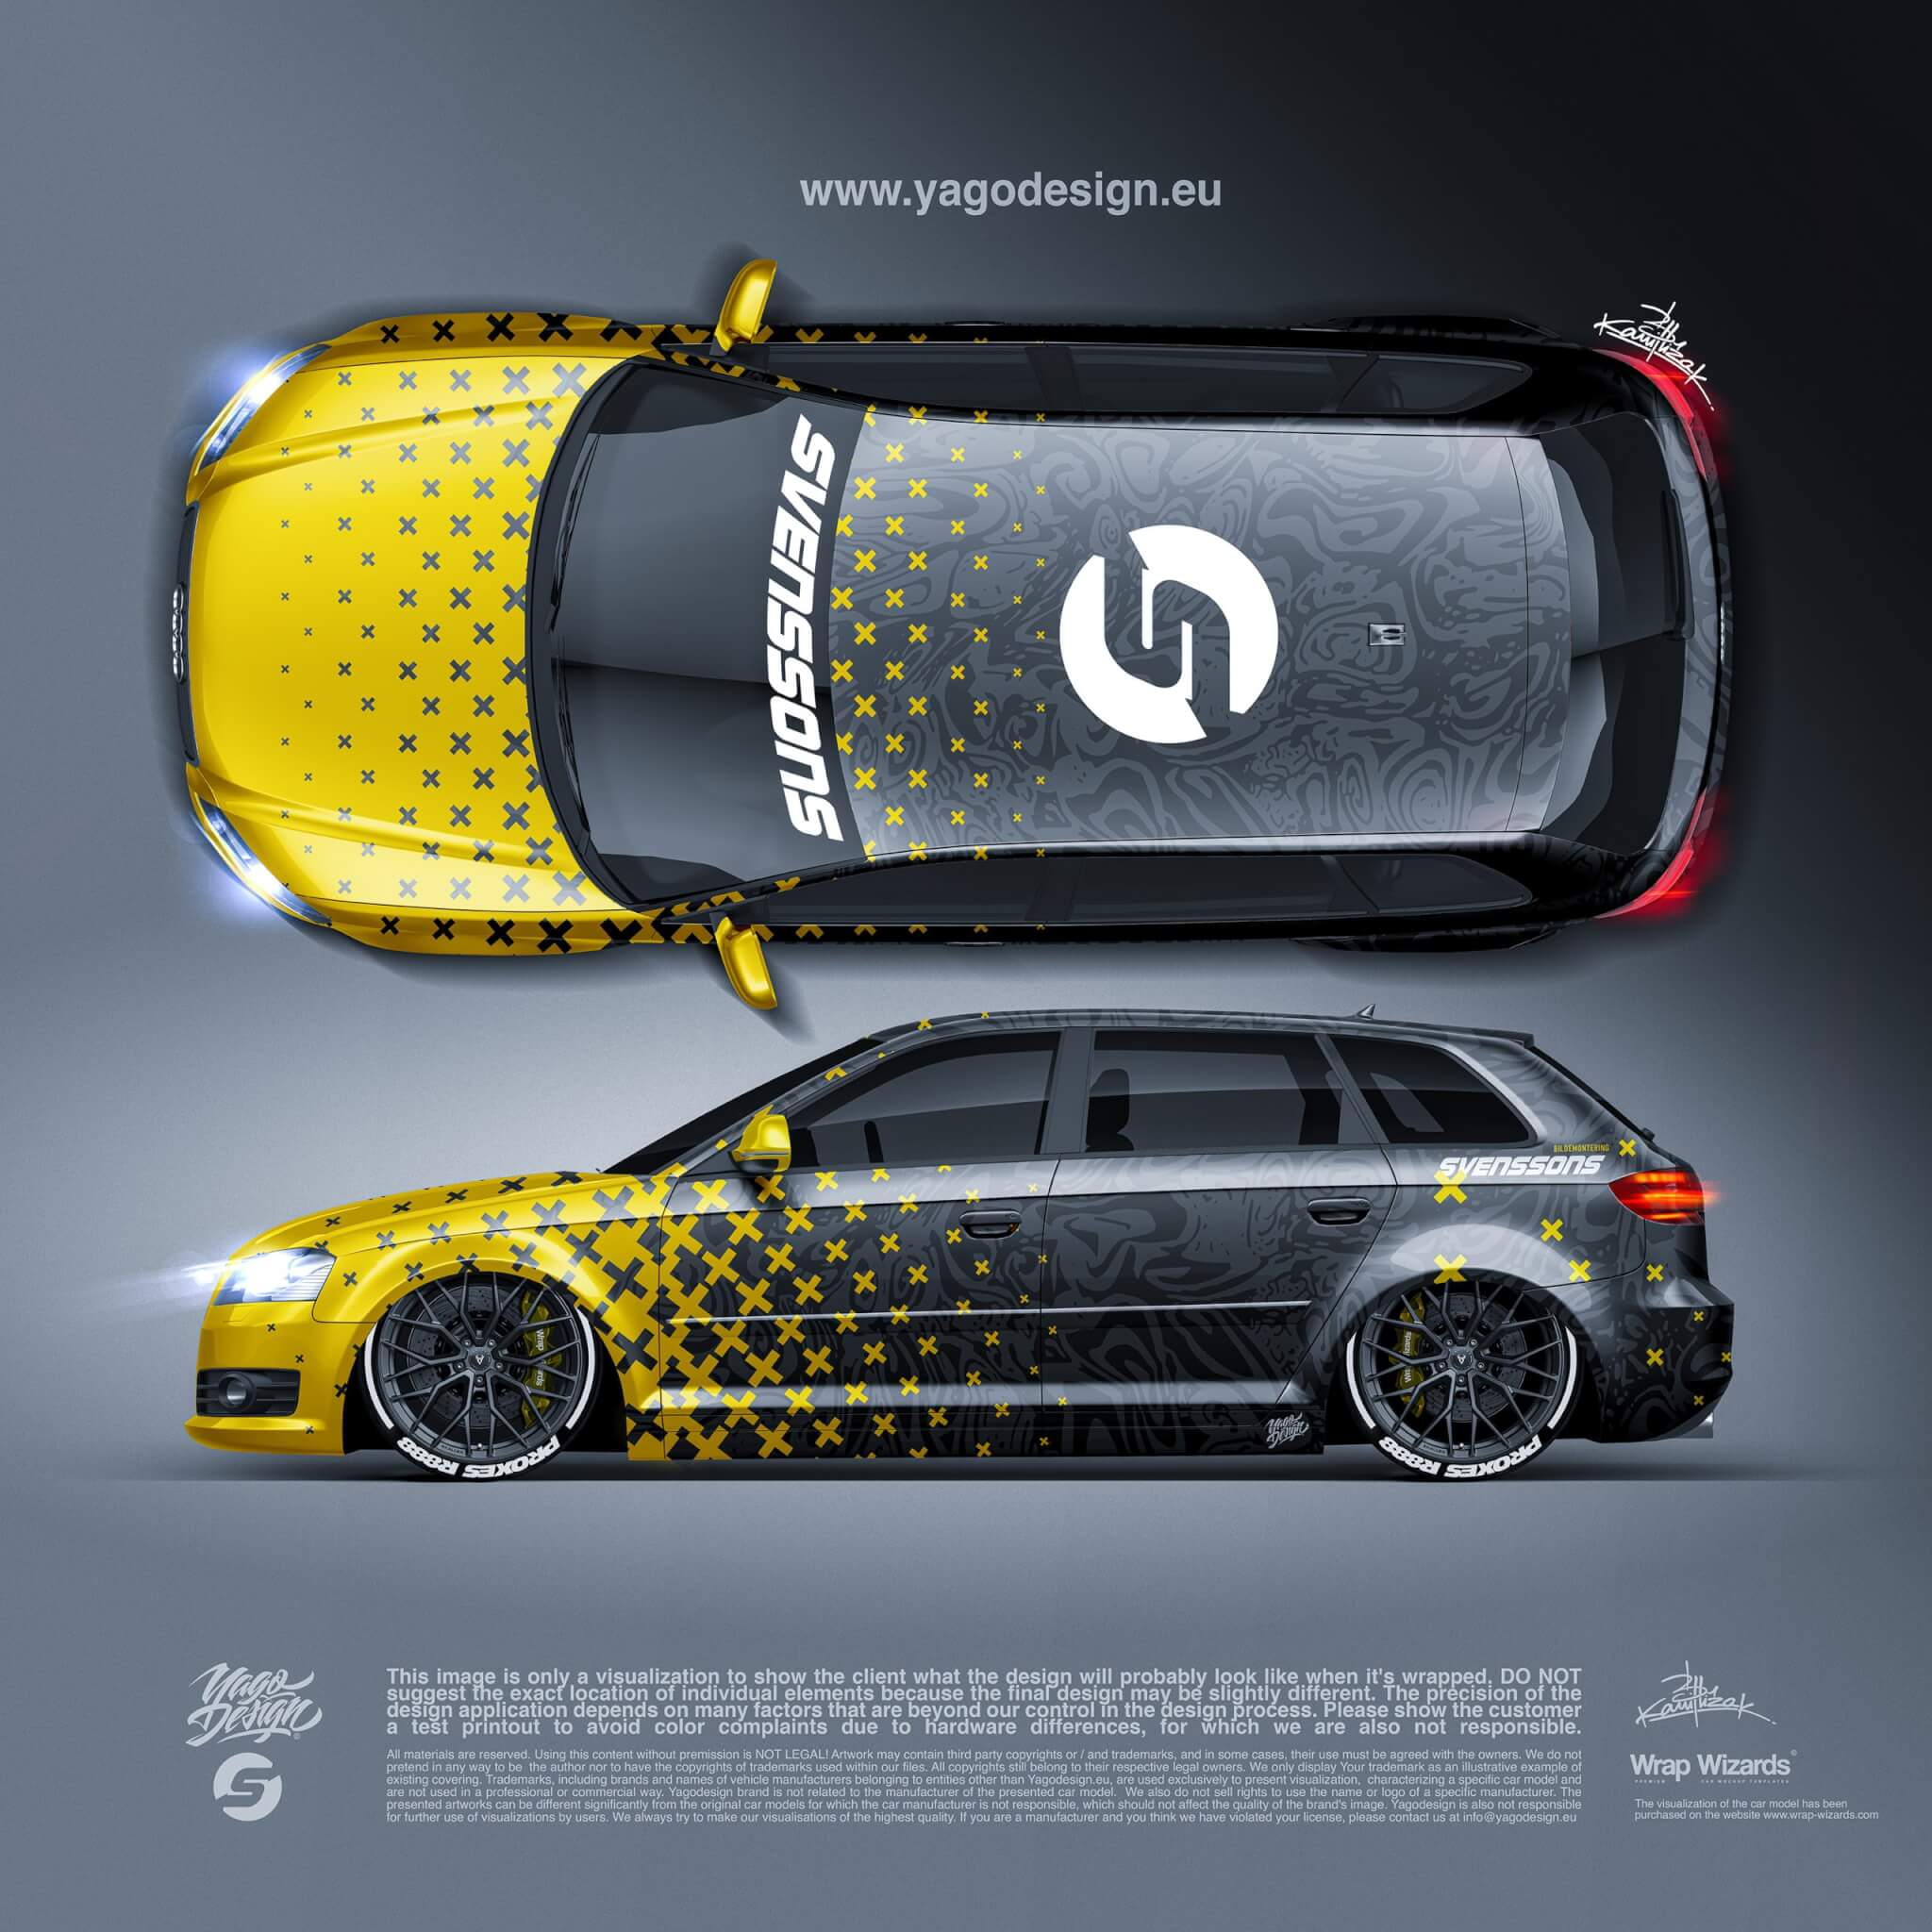 AUDI-A3-P8-SPORTBACK-SIDE&TOP-3000PX-(optimized-for-Instagram)